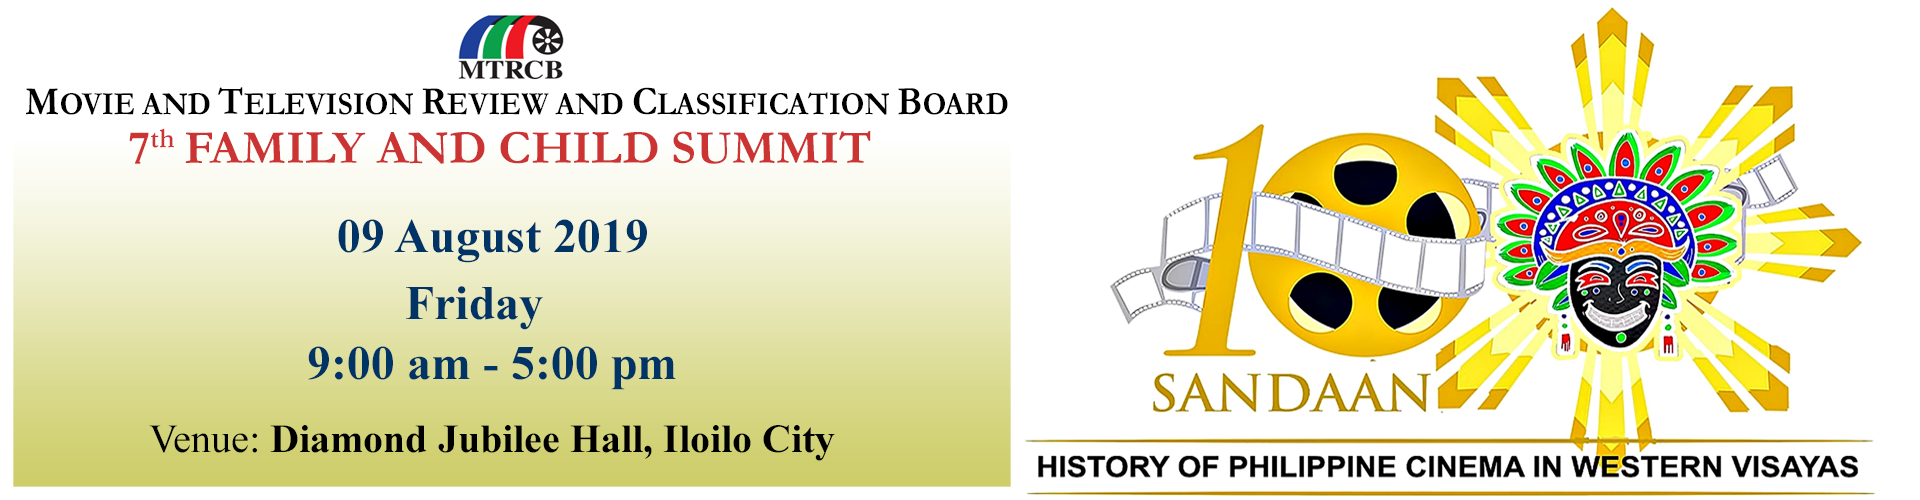 MTRCB 7th Family and Child Summitr